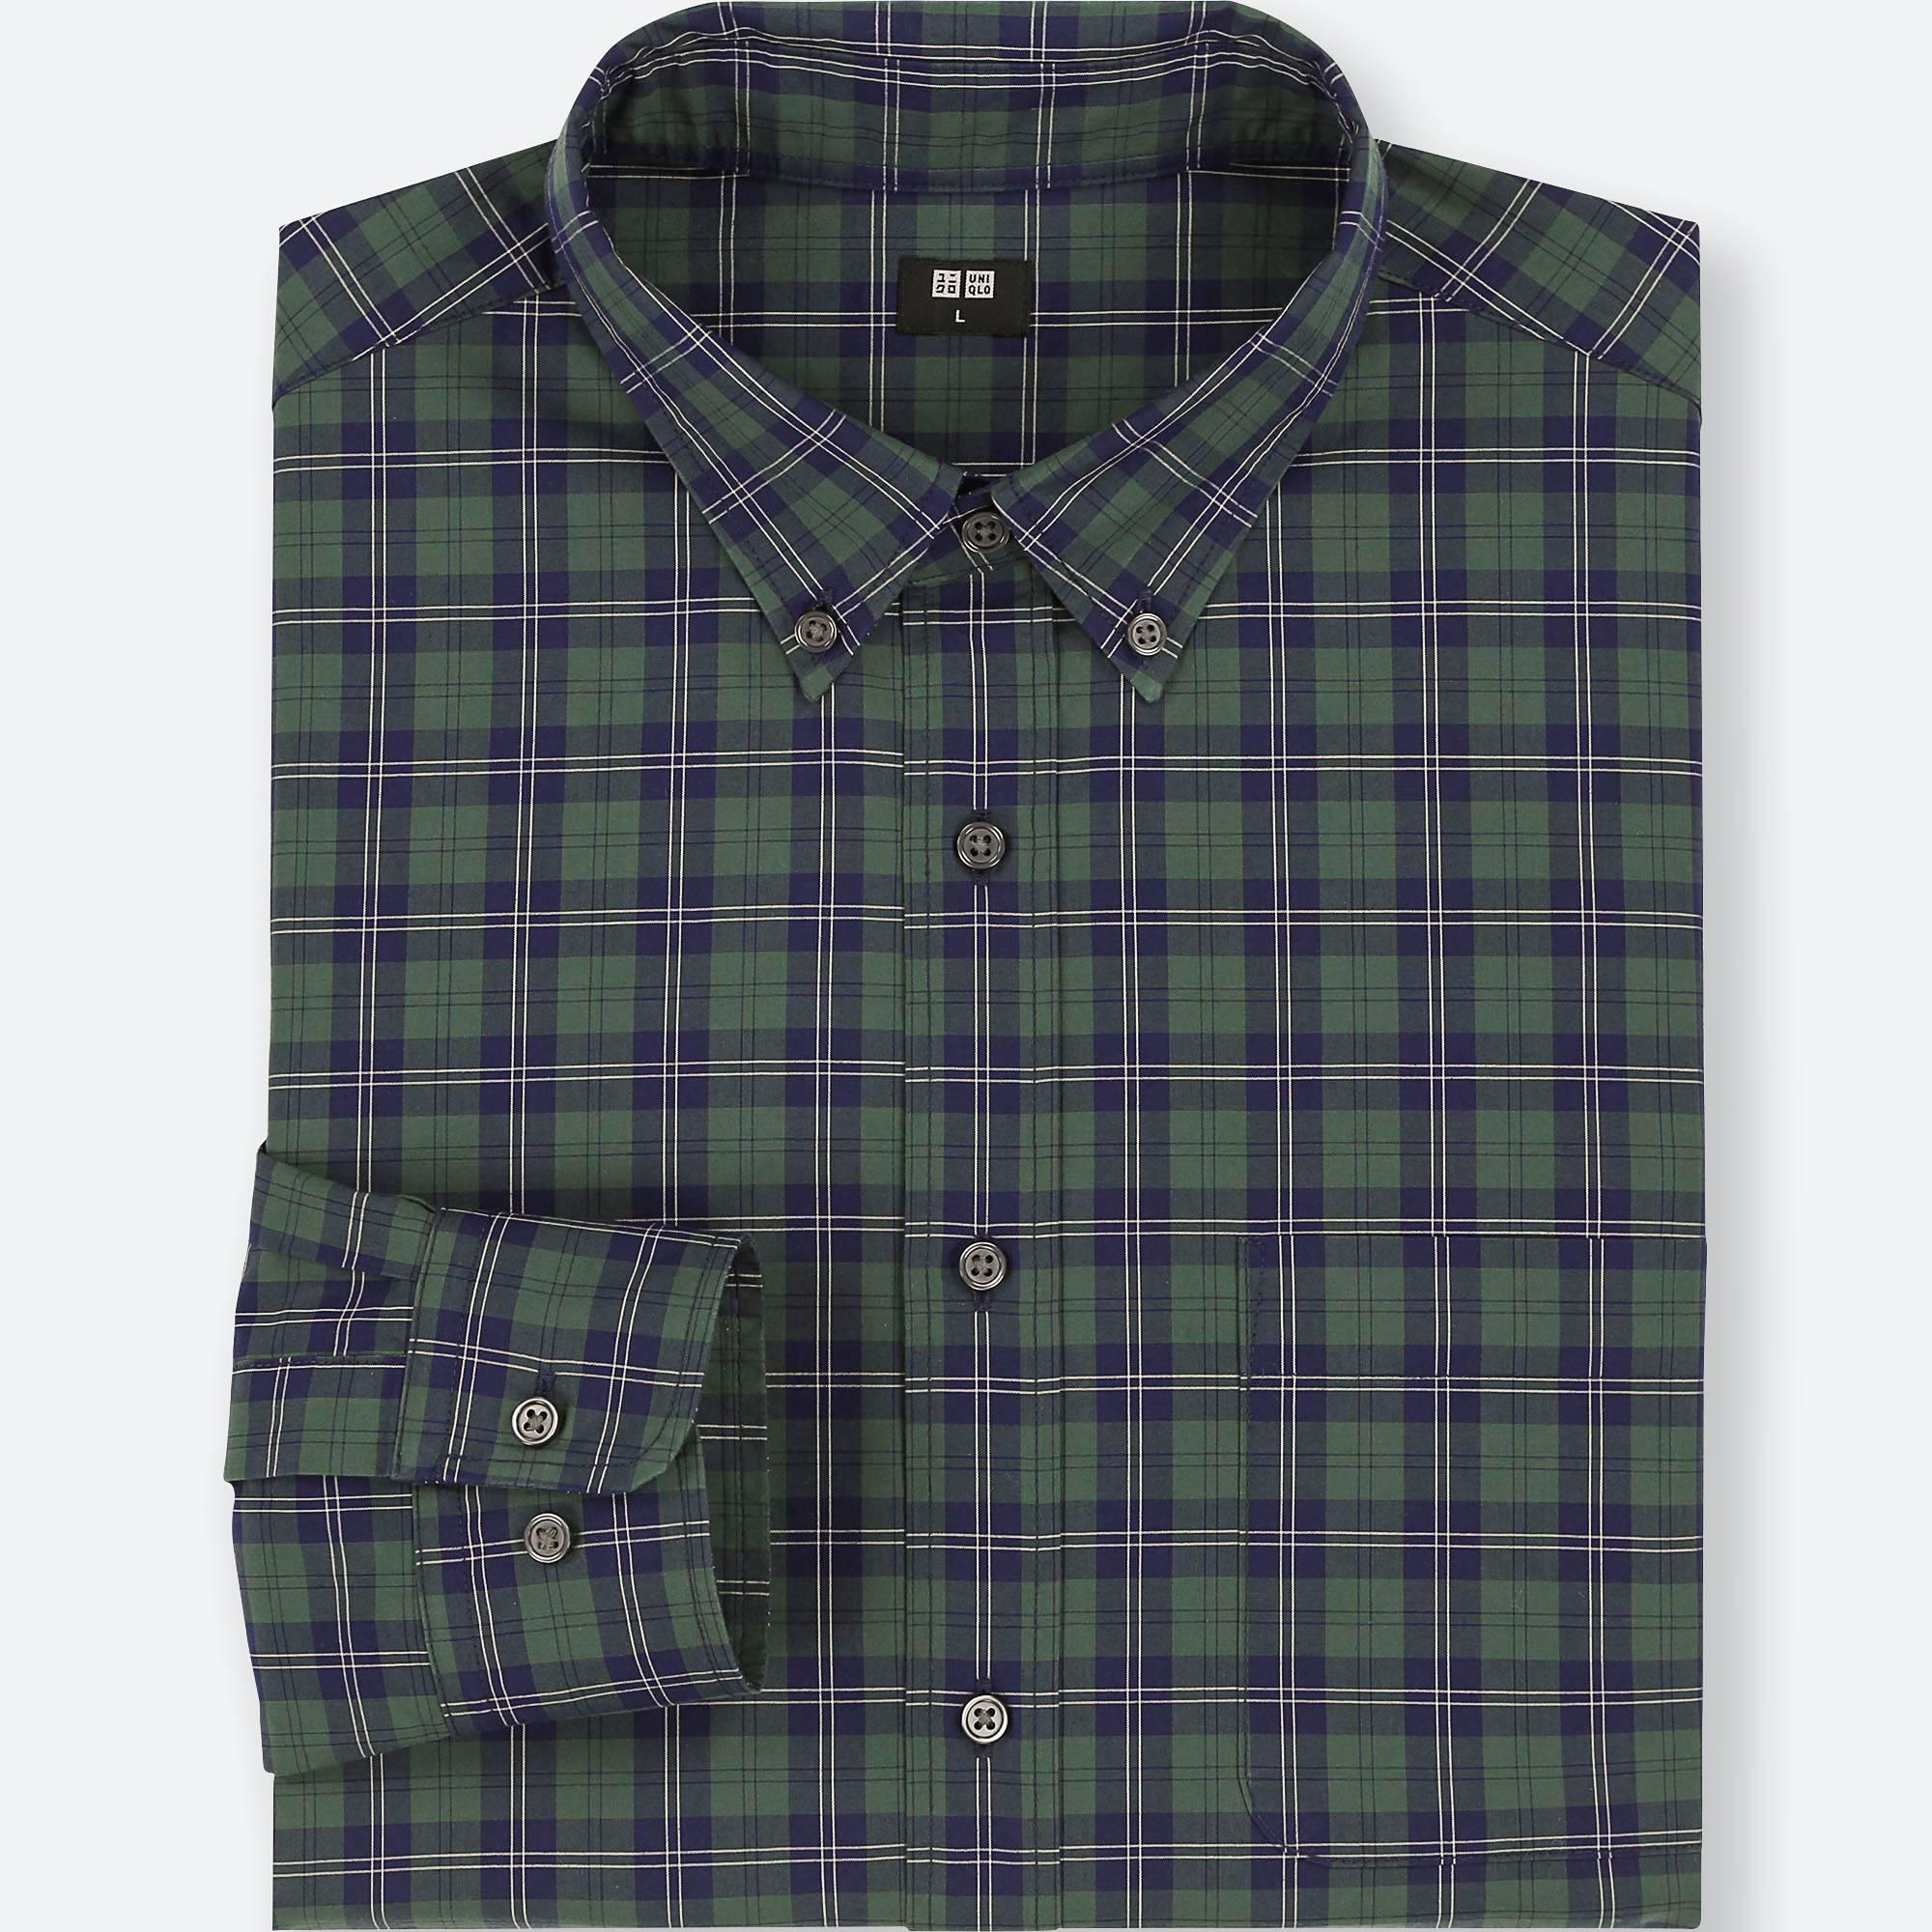 32f52eca17d3 Uniqlo - Green Extra Fine Cotton Broadcloth Regular Fit Checked Shirt  (button-down Collar